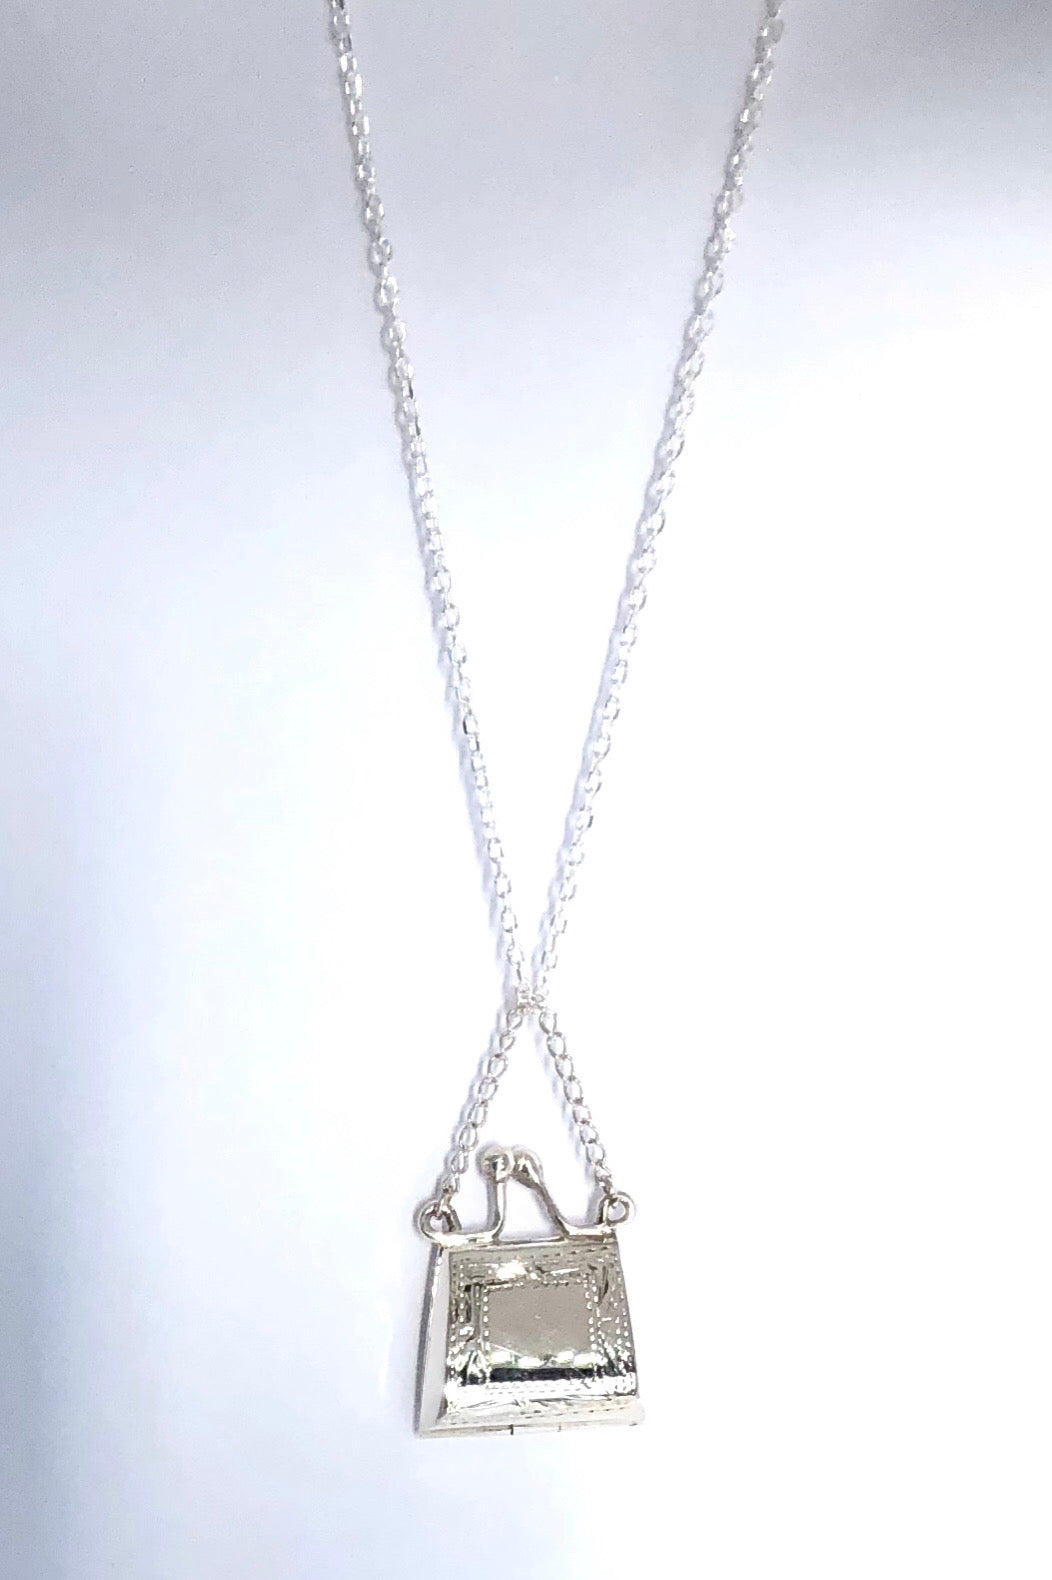 Pendant Locket Purse is a purse shaped locket that opens, 925 solid silver, pendant is 3cm long and comes on a 925 silver chain.